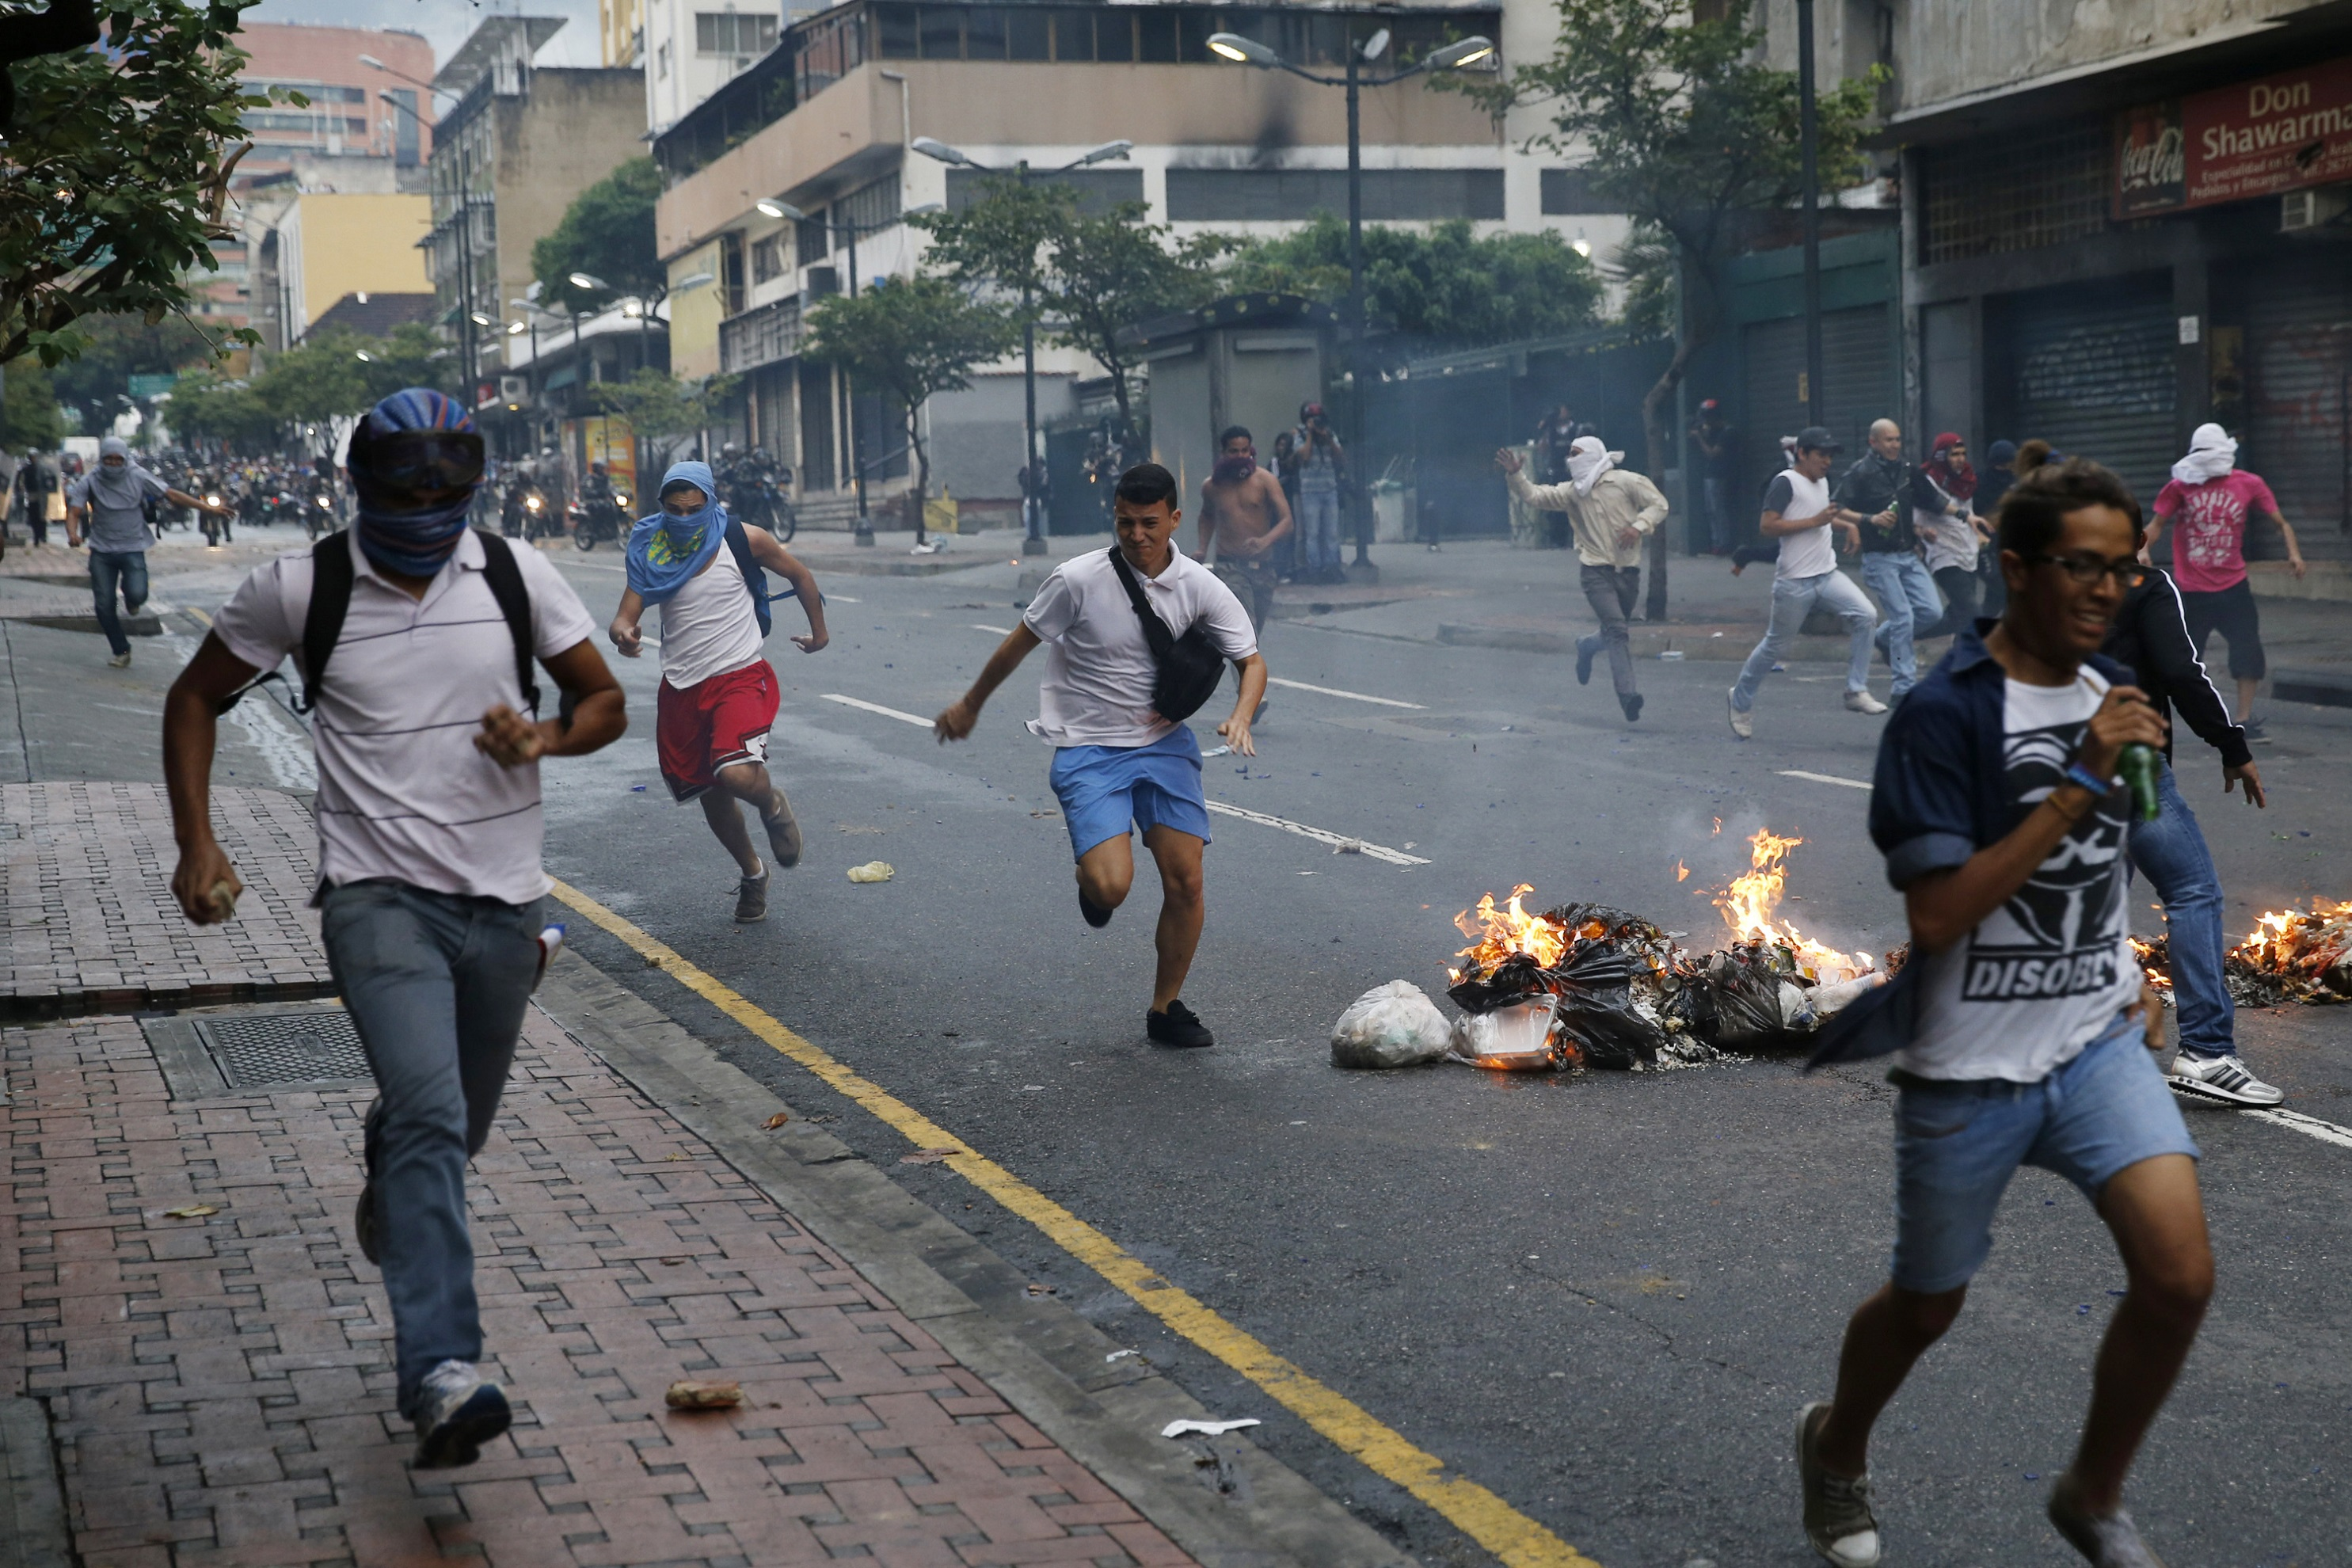 Venezuelans running in the streets.